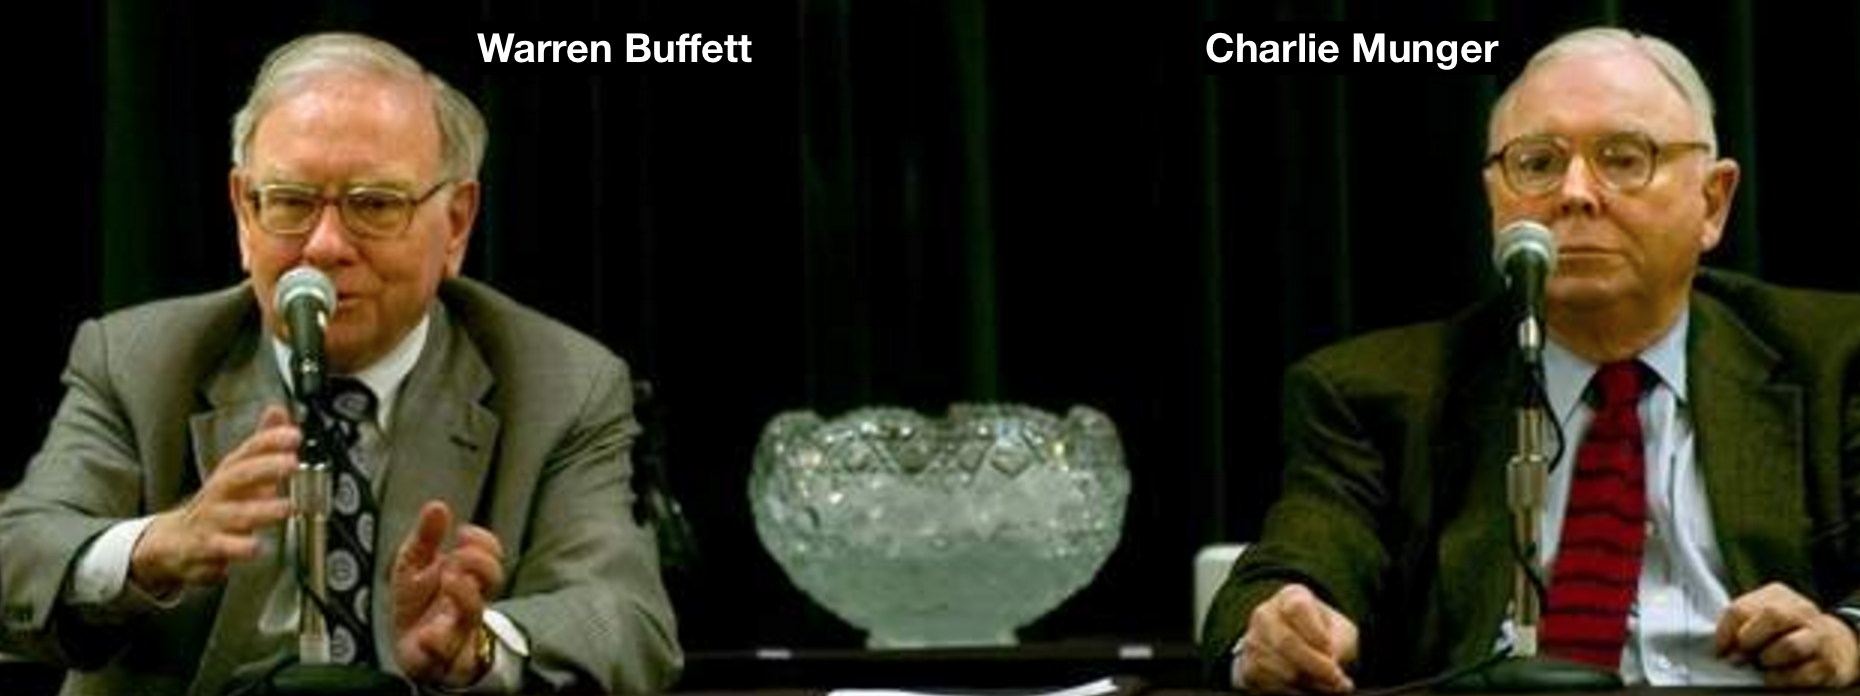 5 Quotes From The Legendary Charlie Munger Stefan Cheplick